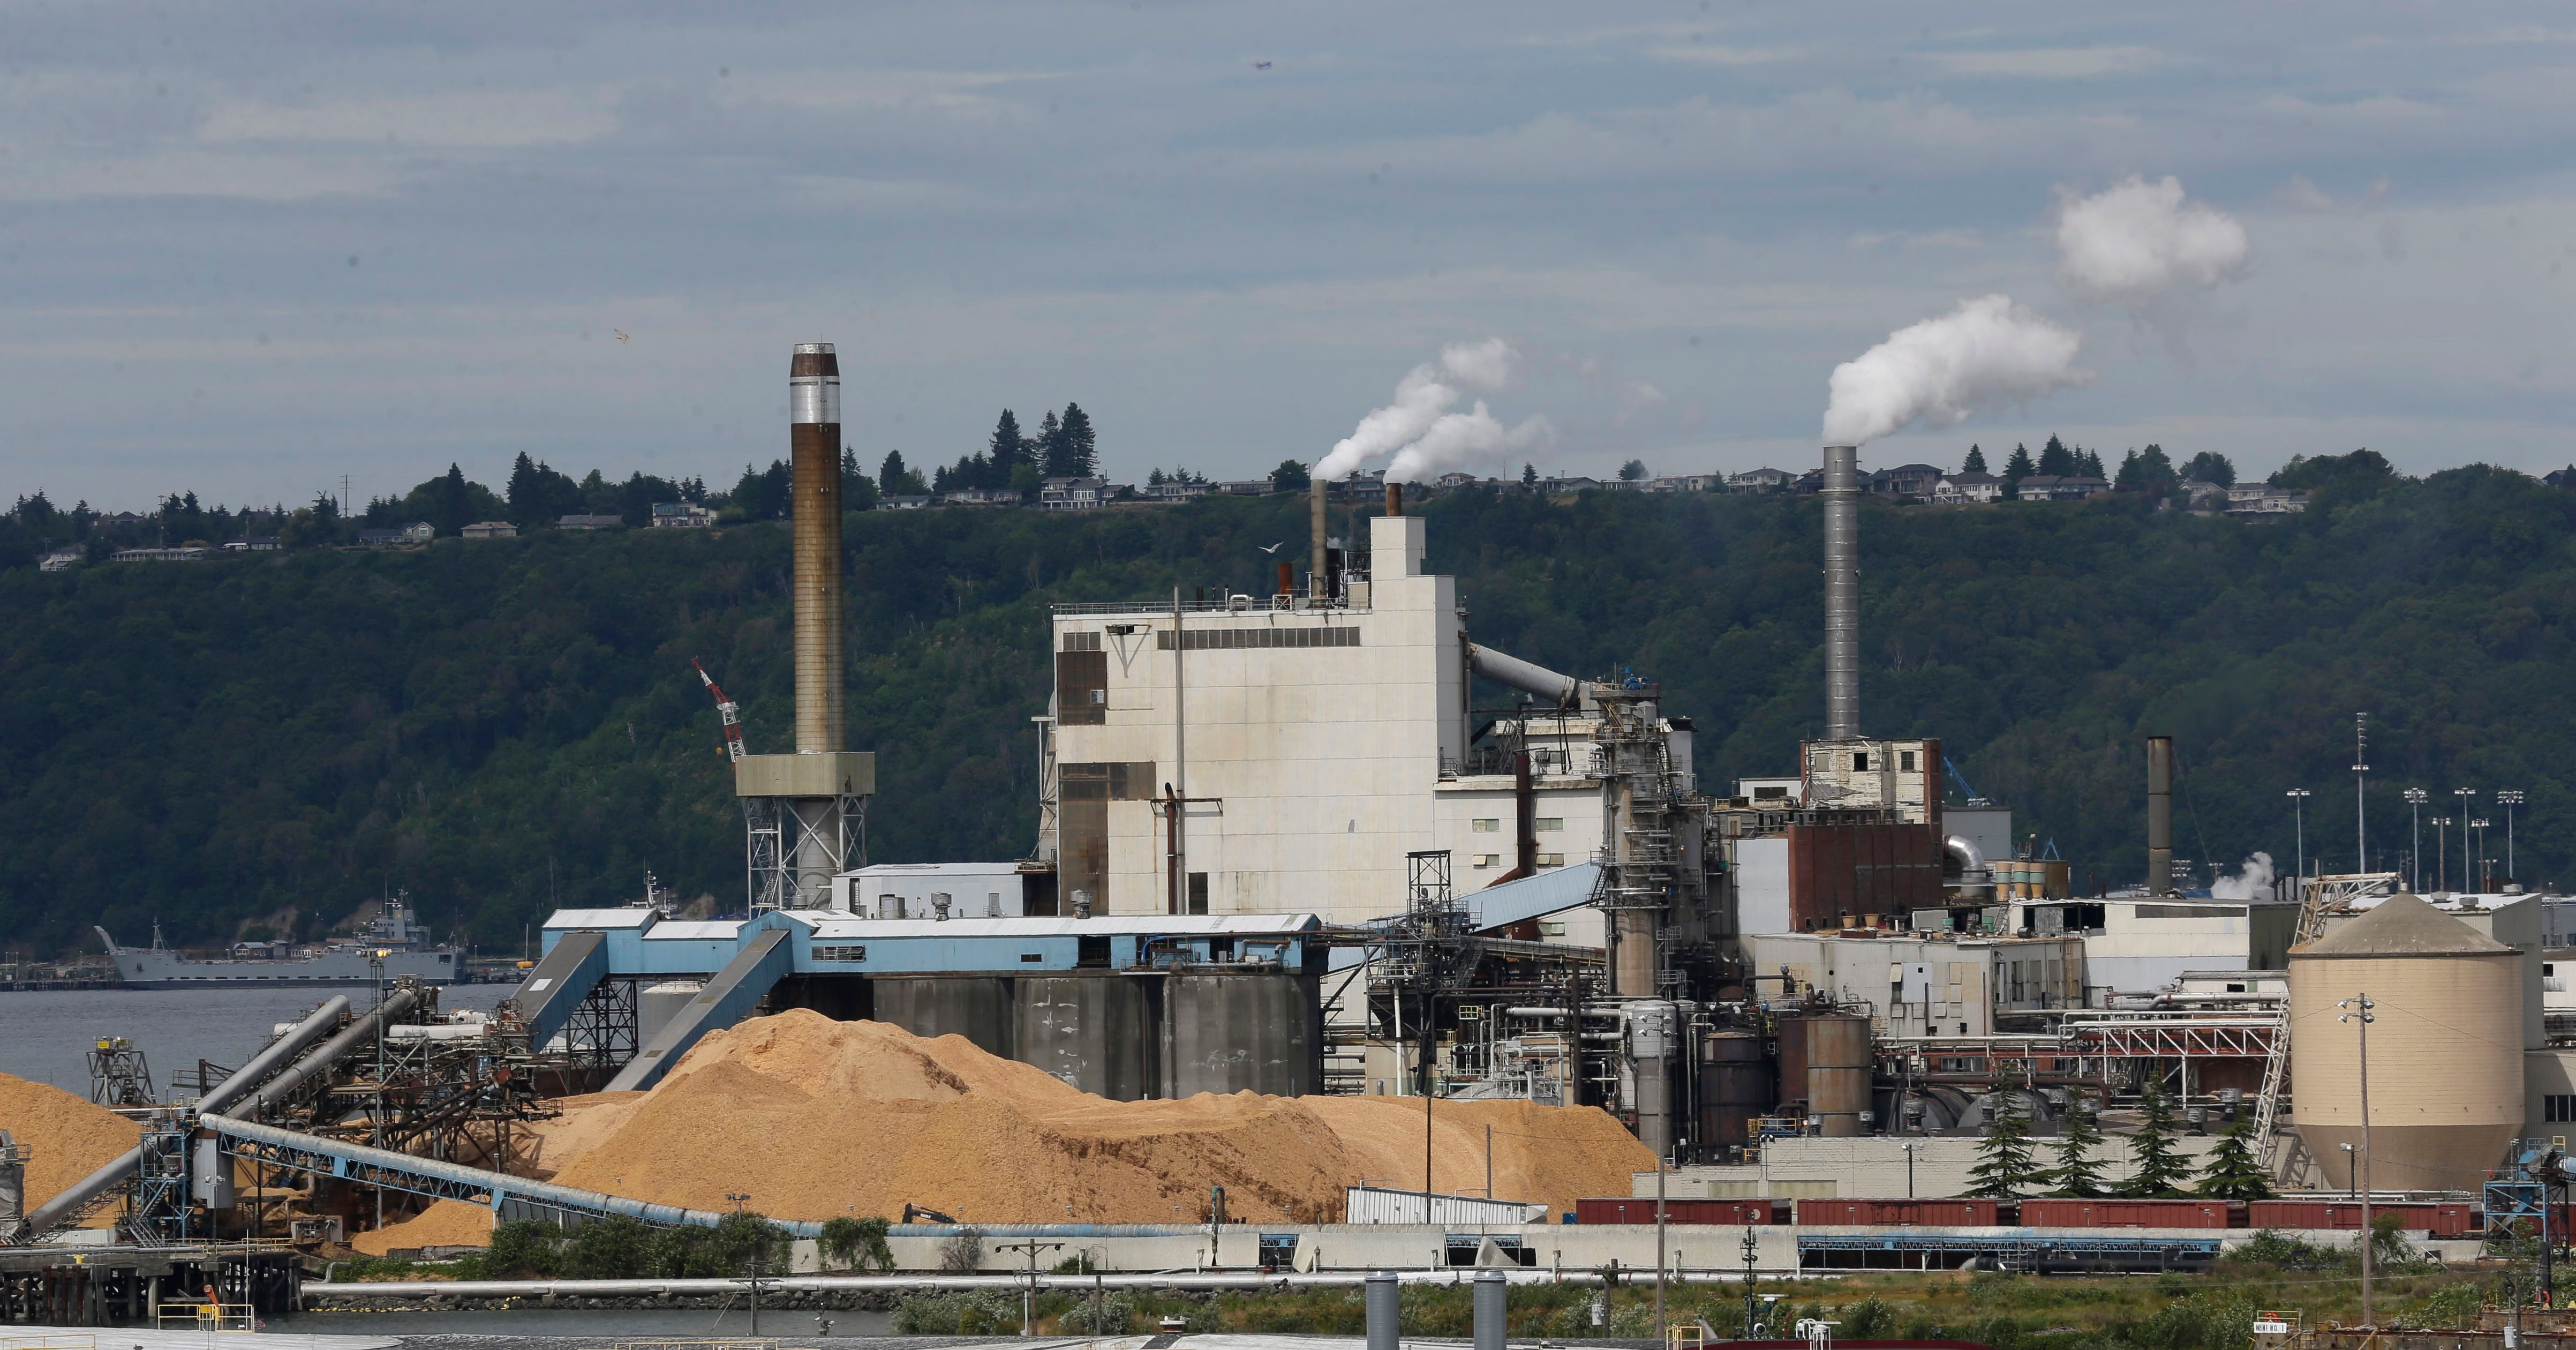 This file photo from 2016 shows piles of wood chips sit near the RockTenn paper mill, in Tacoma, Wash.